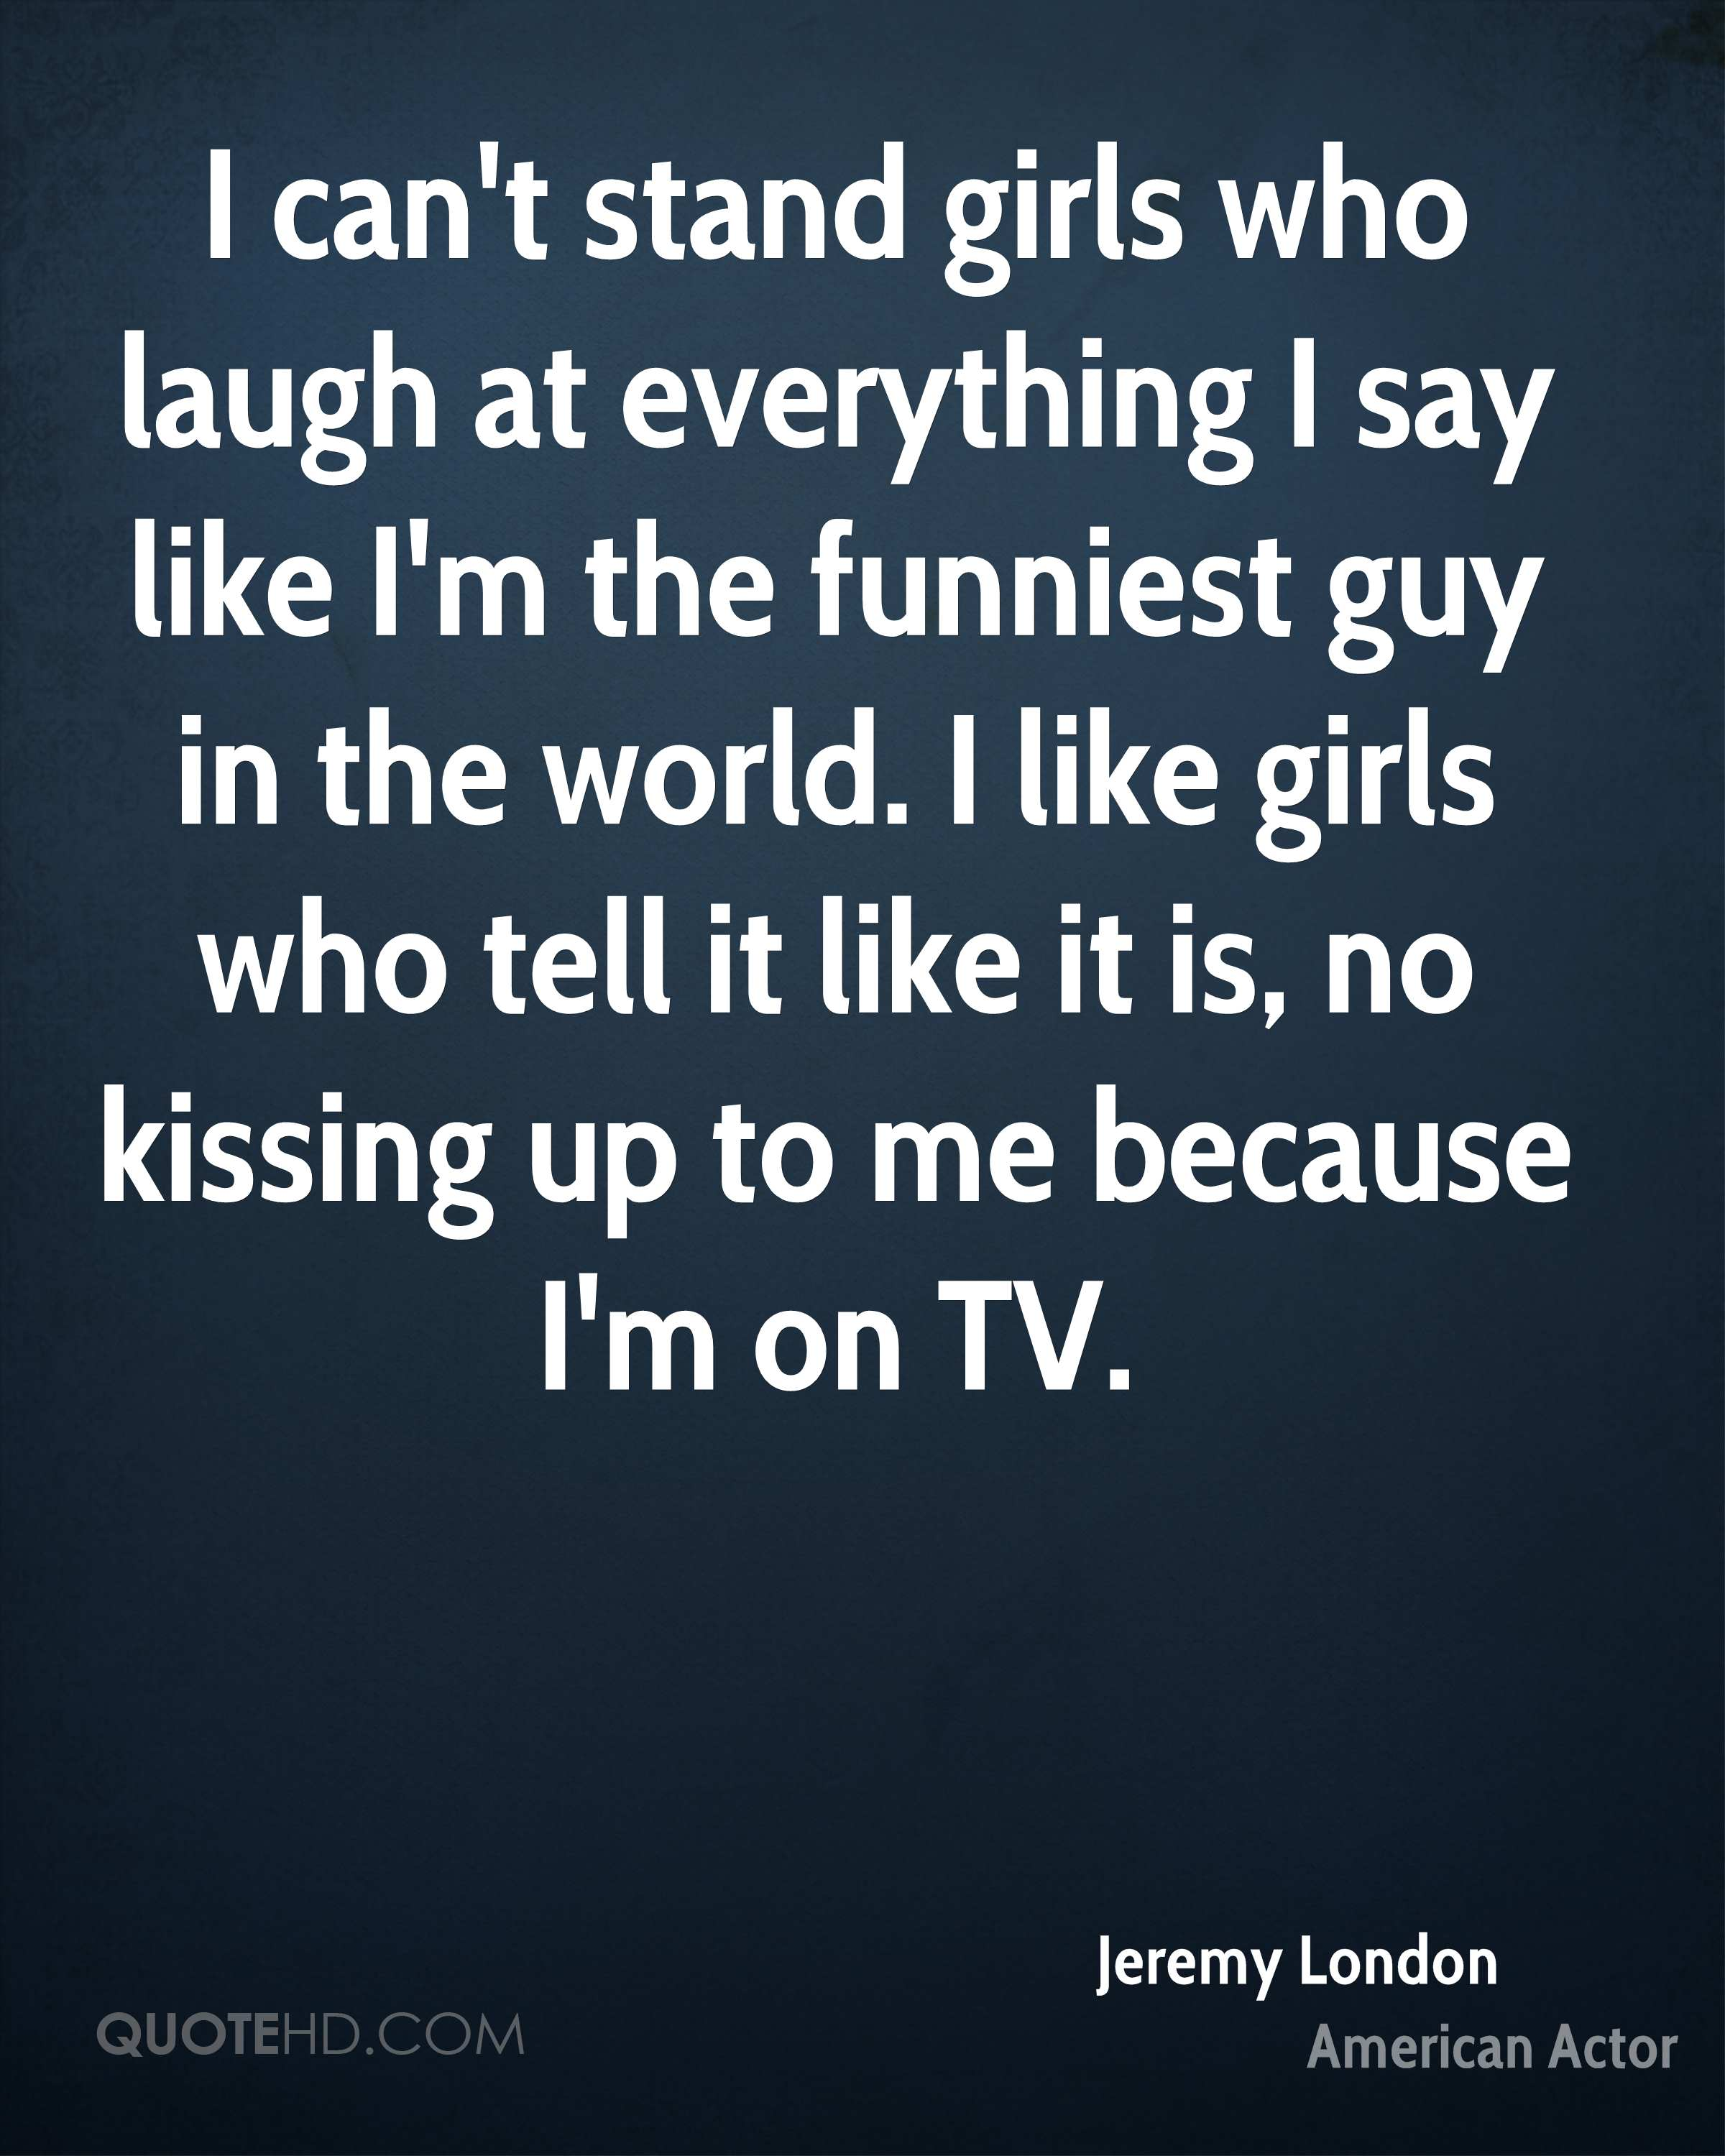 I can't stand girls who laugh at everything I say like I'm the funniest guy in the world. I like girls who tell it like it is, no kissing up to me because I'm on TV.